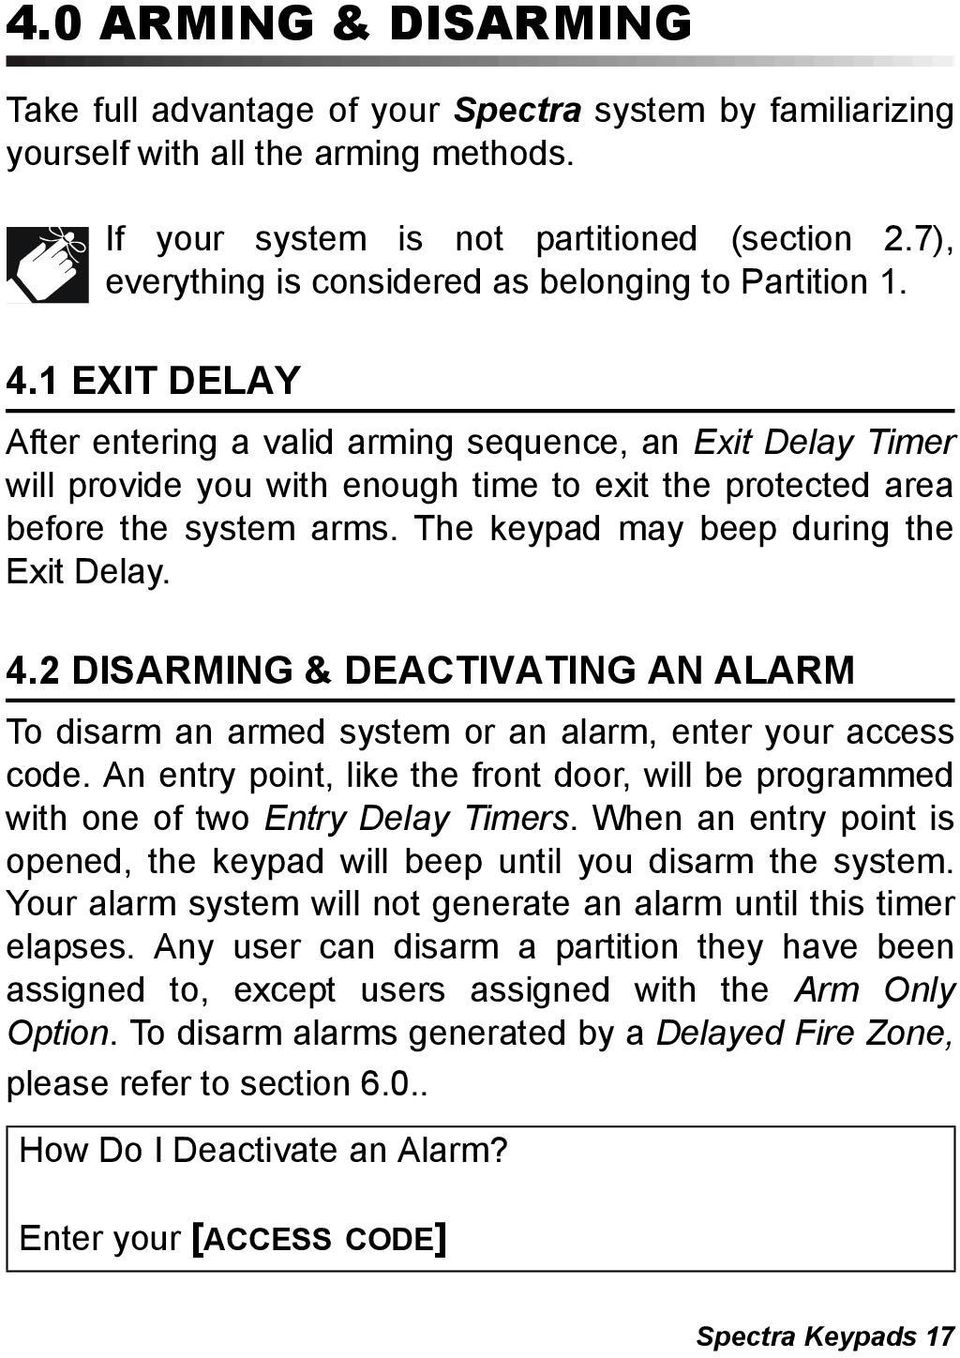 1 EXIT DELAY After entering a valid arming sequence, an Exit Delay Timer will provide you with enough time to exit the protected area before the system arms. The keypad may beep during the Exit Delay.